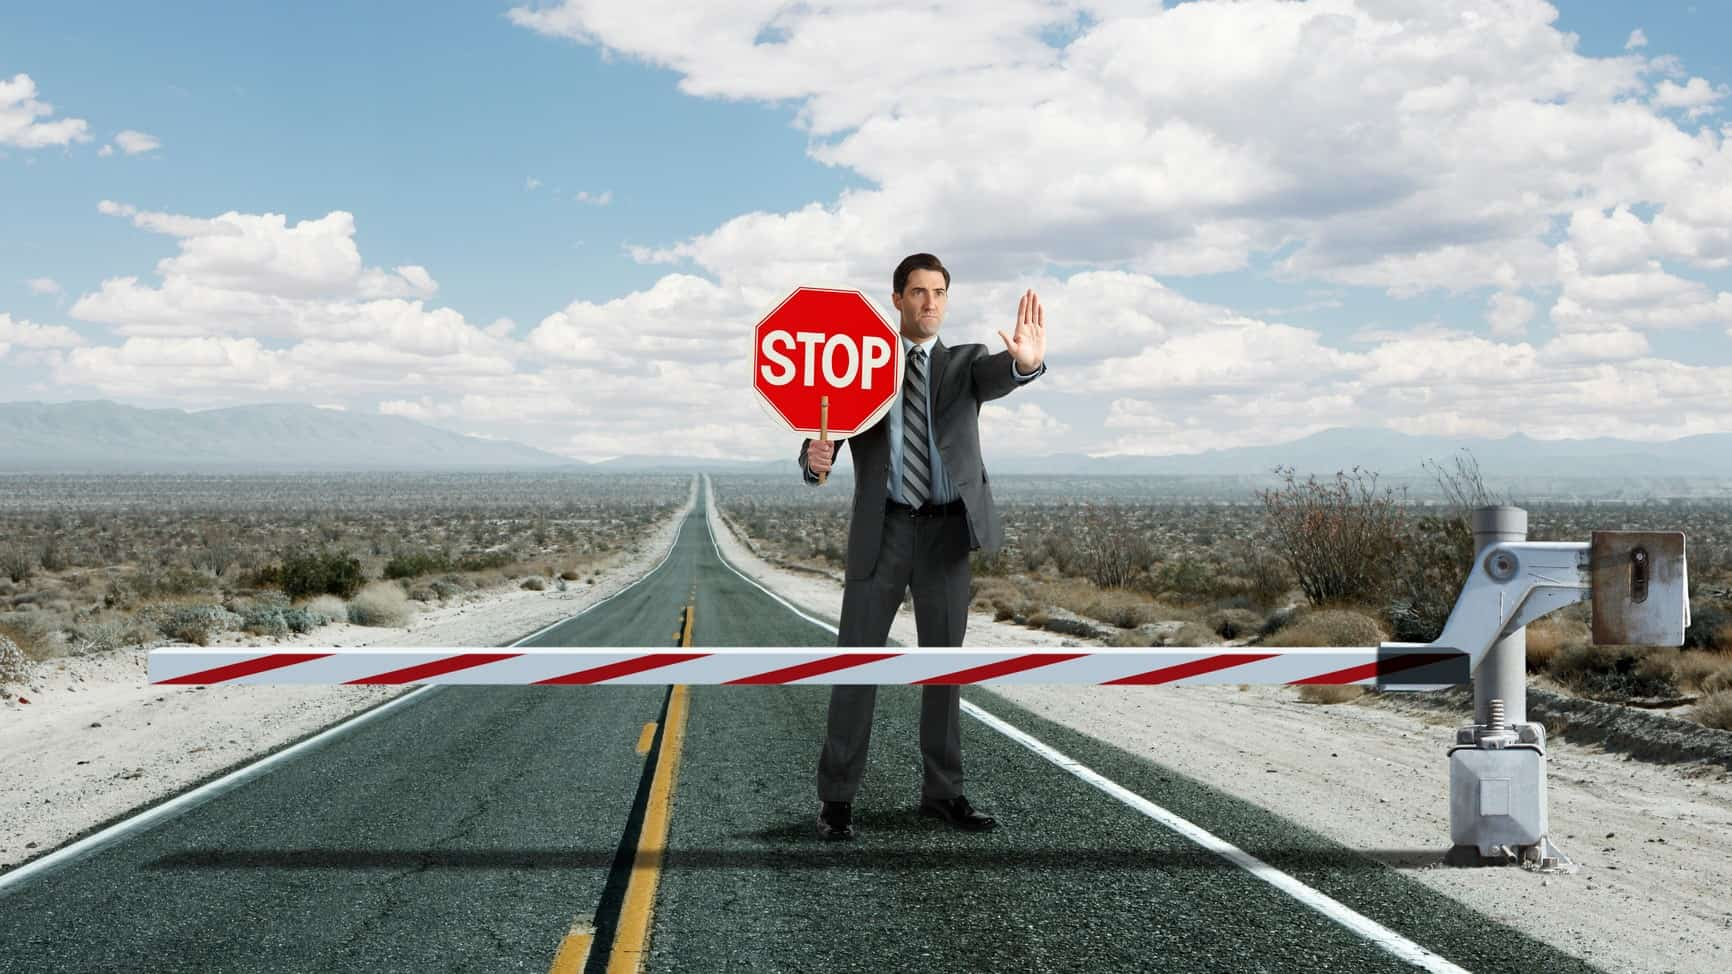 a man in a suit holds up a hand and a stop sign at a roadblock positioned over a bitumen road .